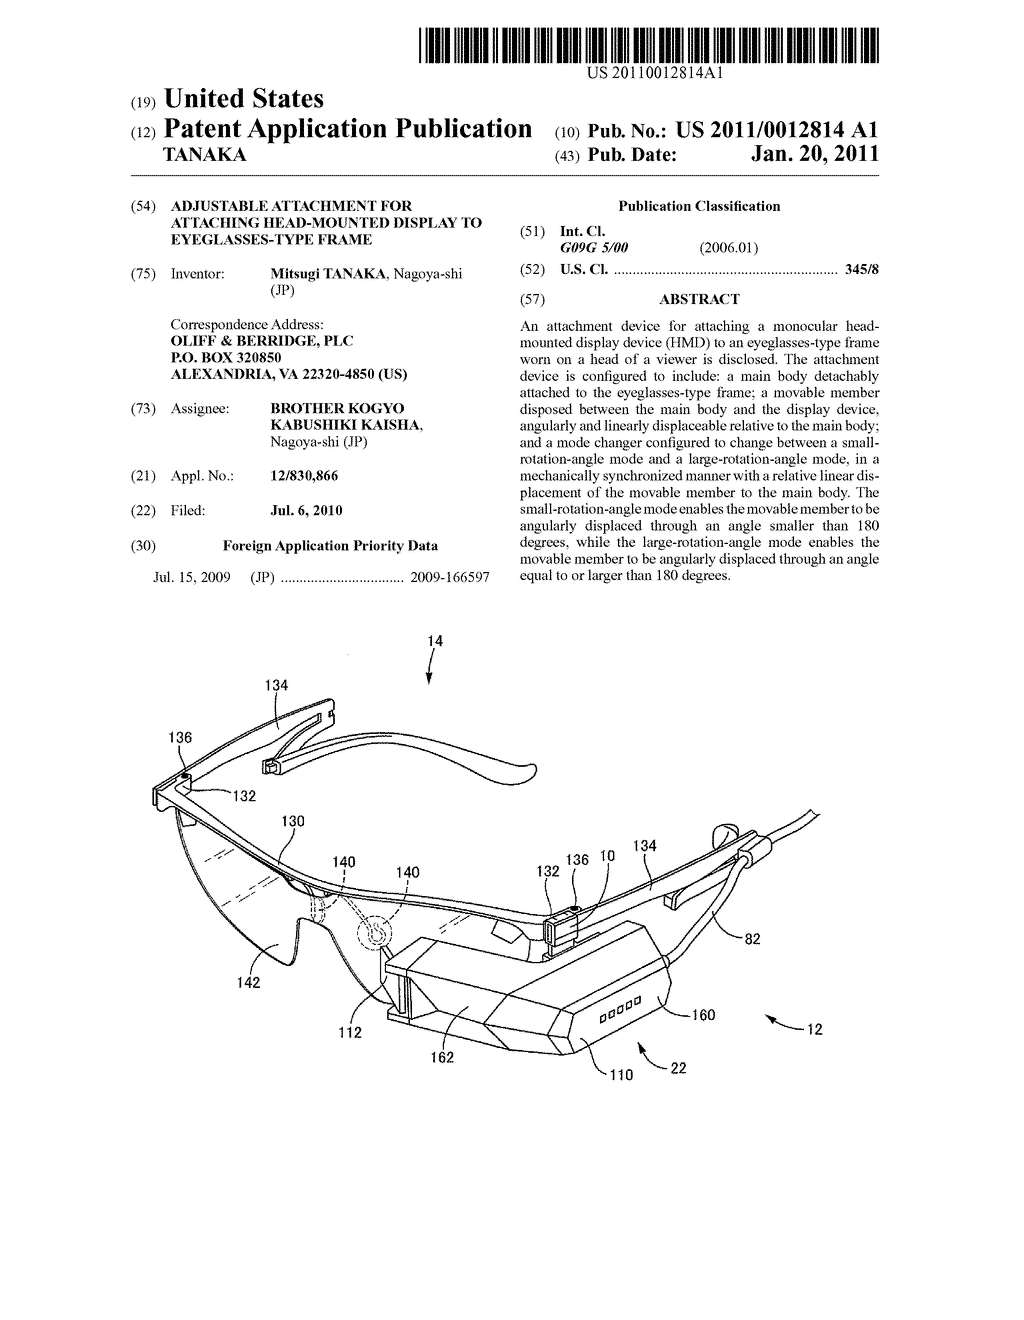 Adjustable Attachment for Attaching Head-Mounted Display to Eyeglasses-Type Frame - diagram, schematic, and image 01